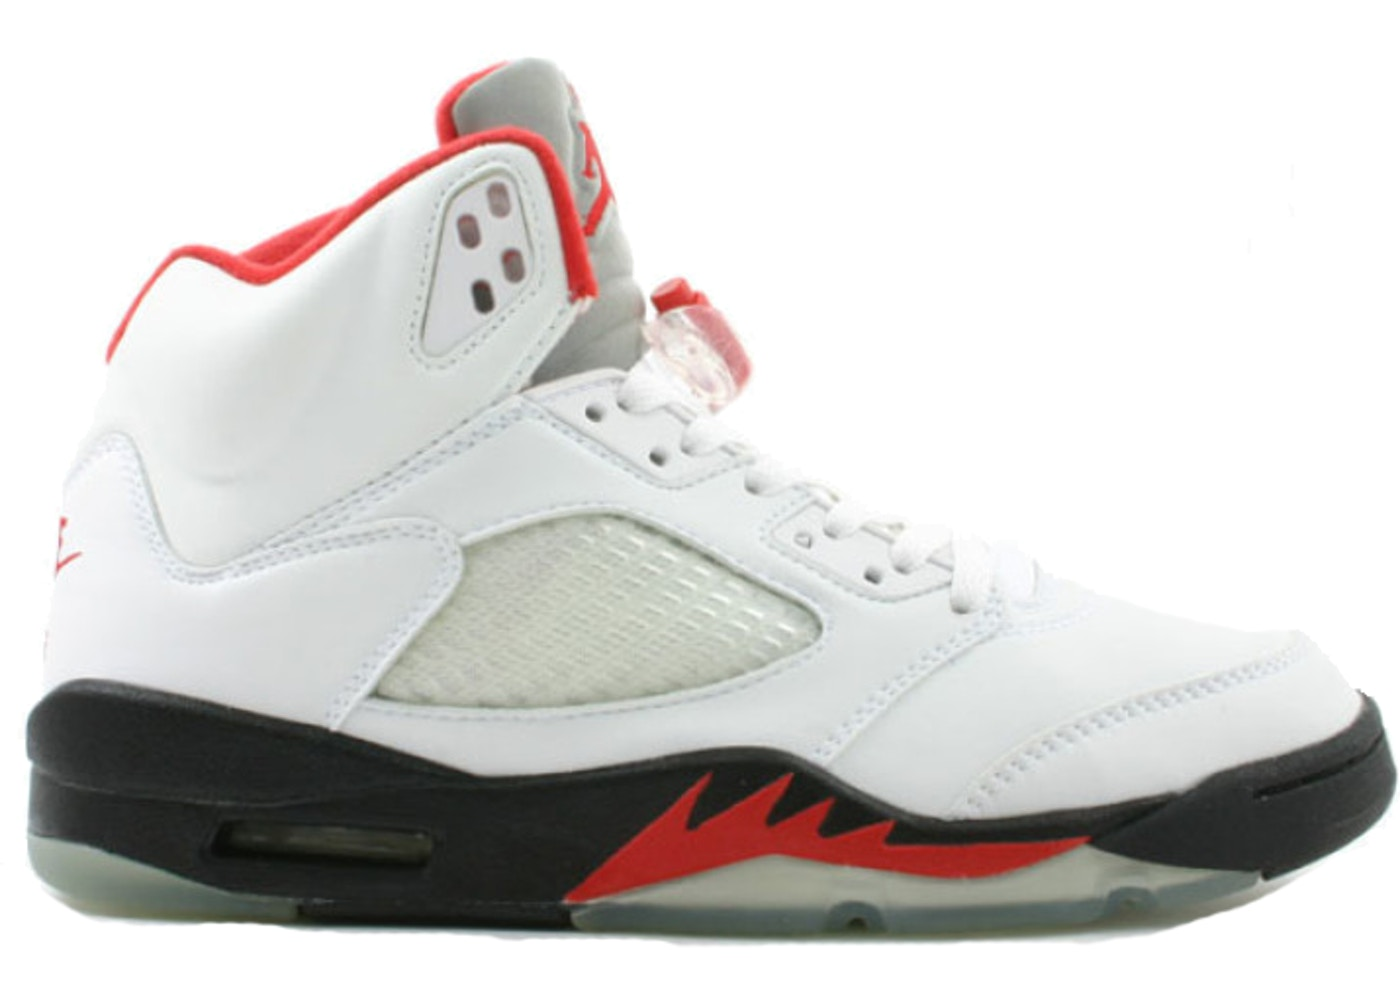 60efcffa Jordan 5 Retro Fire Red (2000) - 136027-101